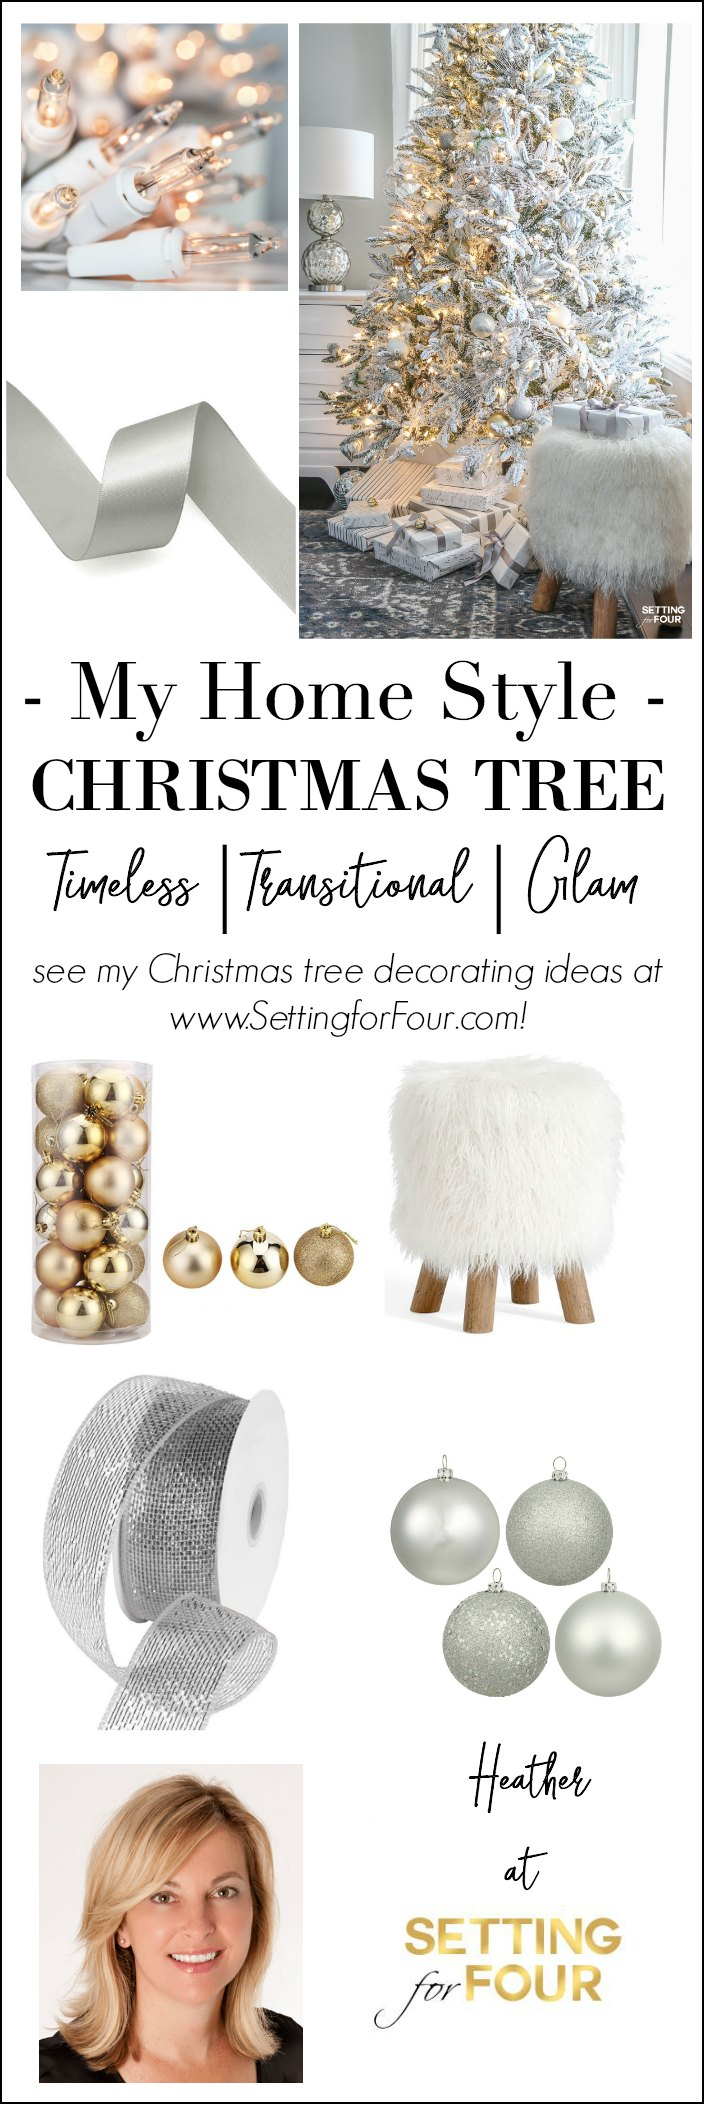 Looking for Christmas tree decorating inspiration? See my ELEGANT FLOCKED CHRISTMAS TREE - WHITE AND GOLD GLAM STYLE! I show you how I use mesh ribbon, beautiful white and gold christmas balls, icicle ornaments and sparkly owls to decorate a traditional christmas tree with a glam, timeless, transitional style.